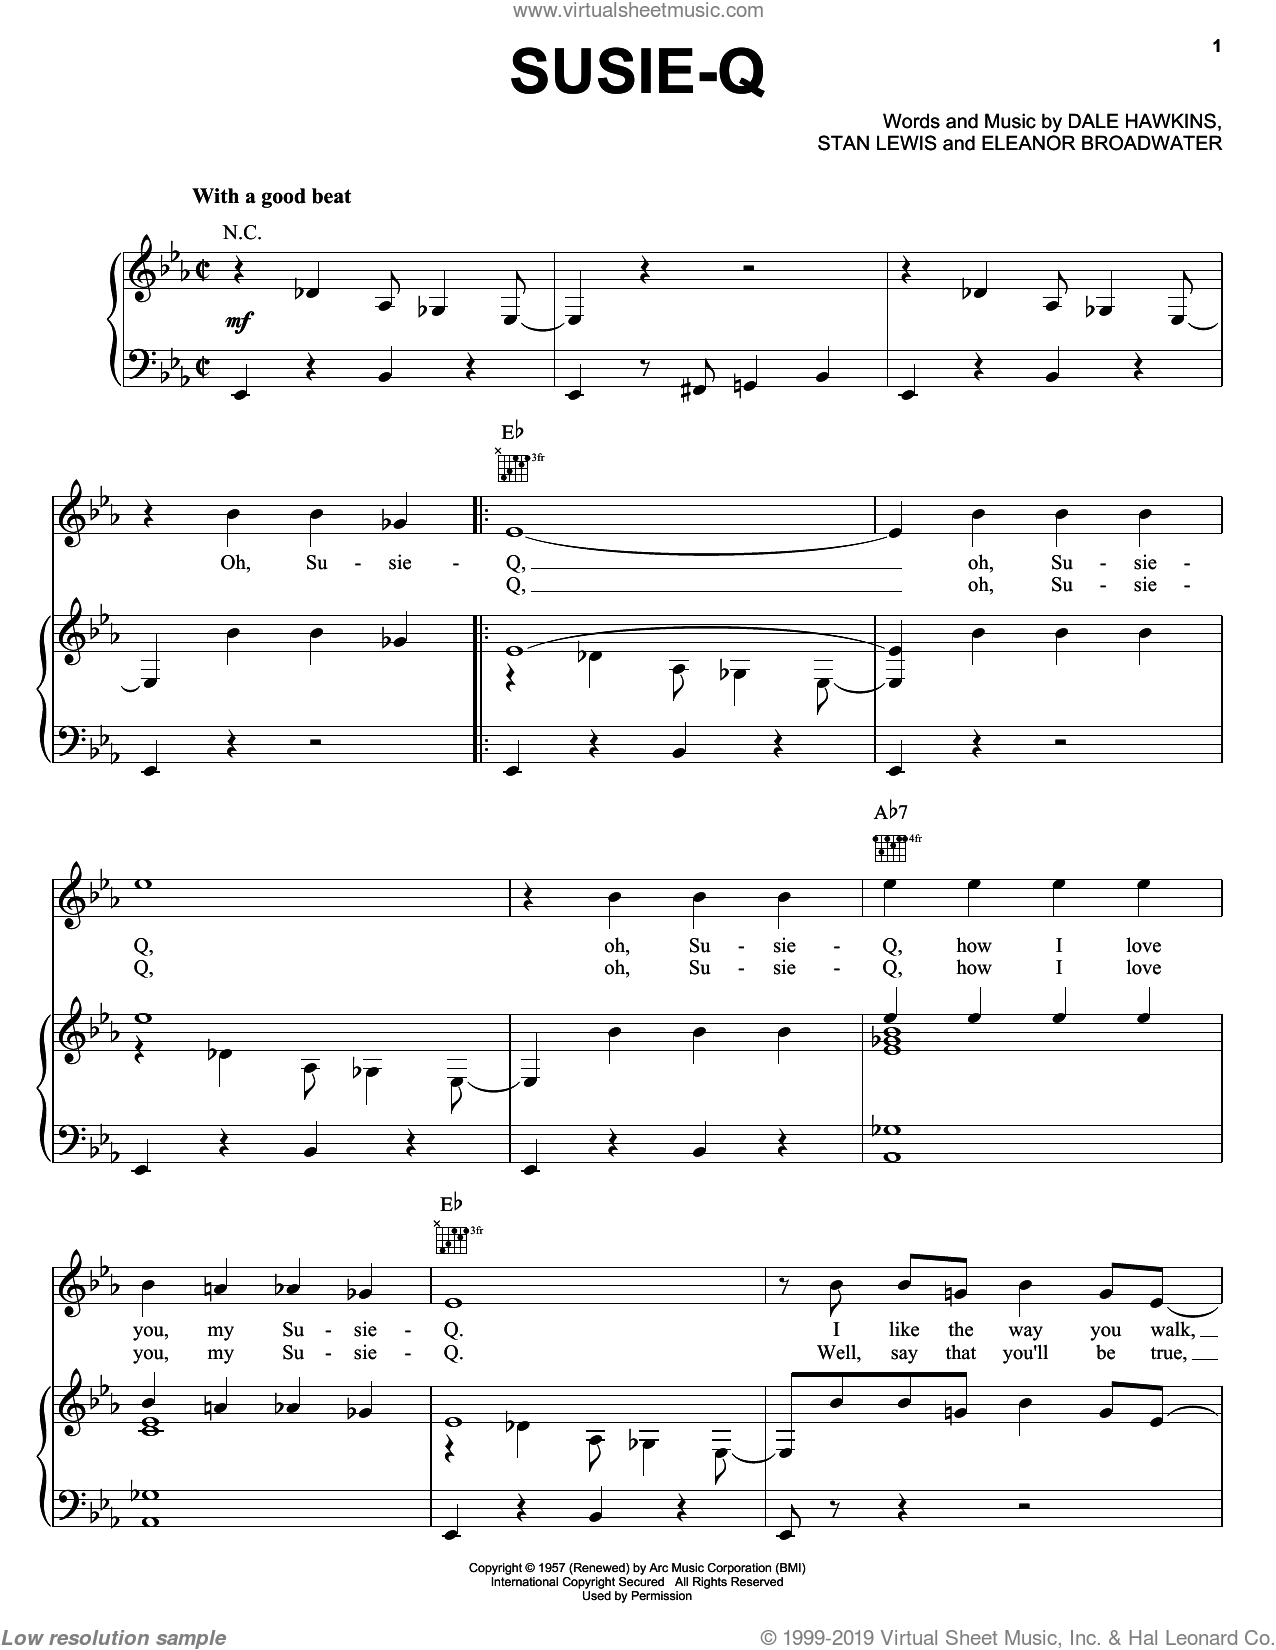 Susie-Q sheet music for voice, piano or guitar by Creedence Clearwater Revival, Dale Hawkins, Eleanor Broadwater and Stan Lewis, intermediate skill level